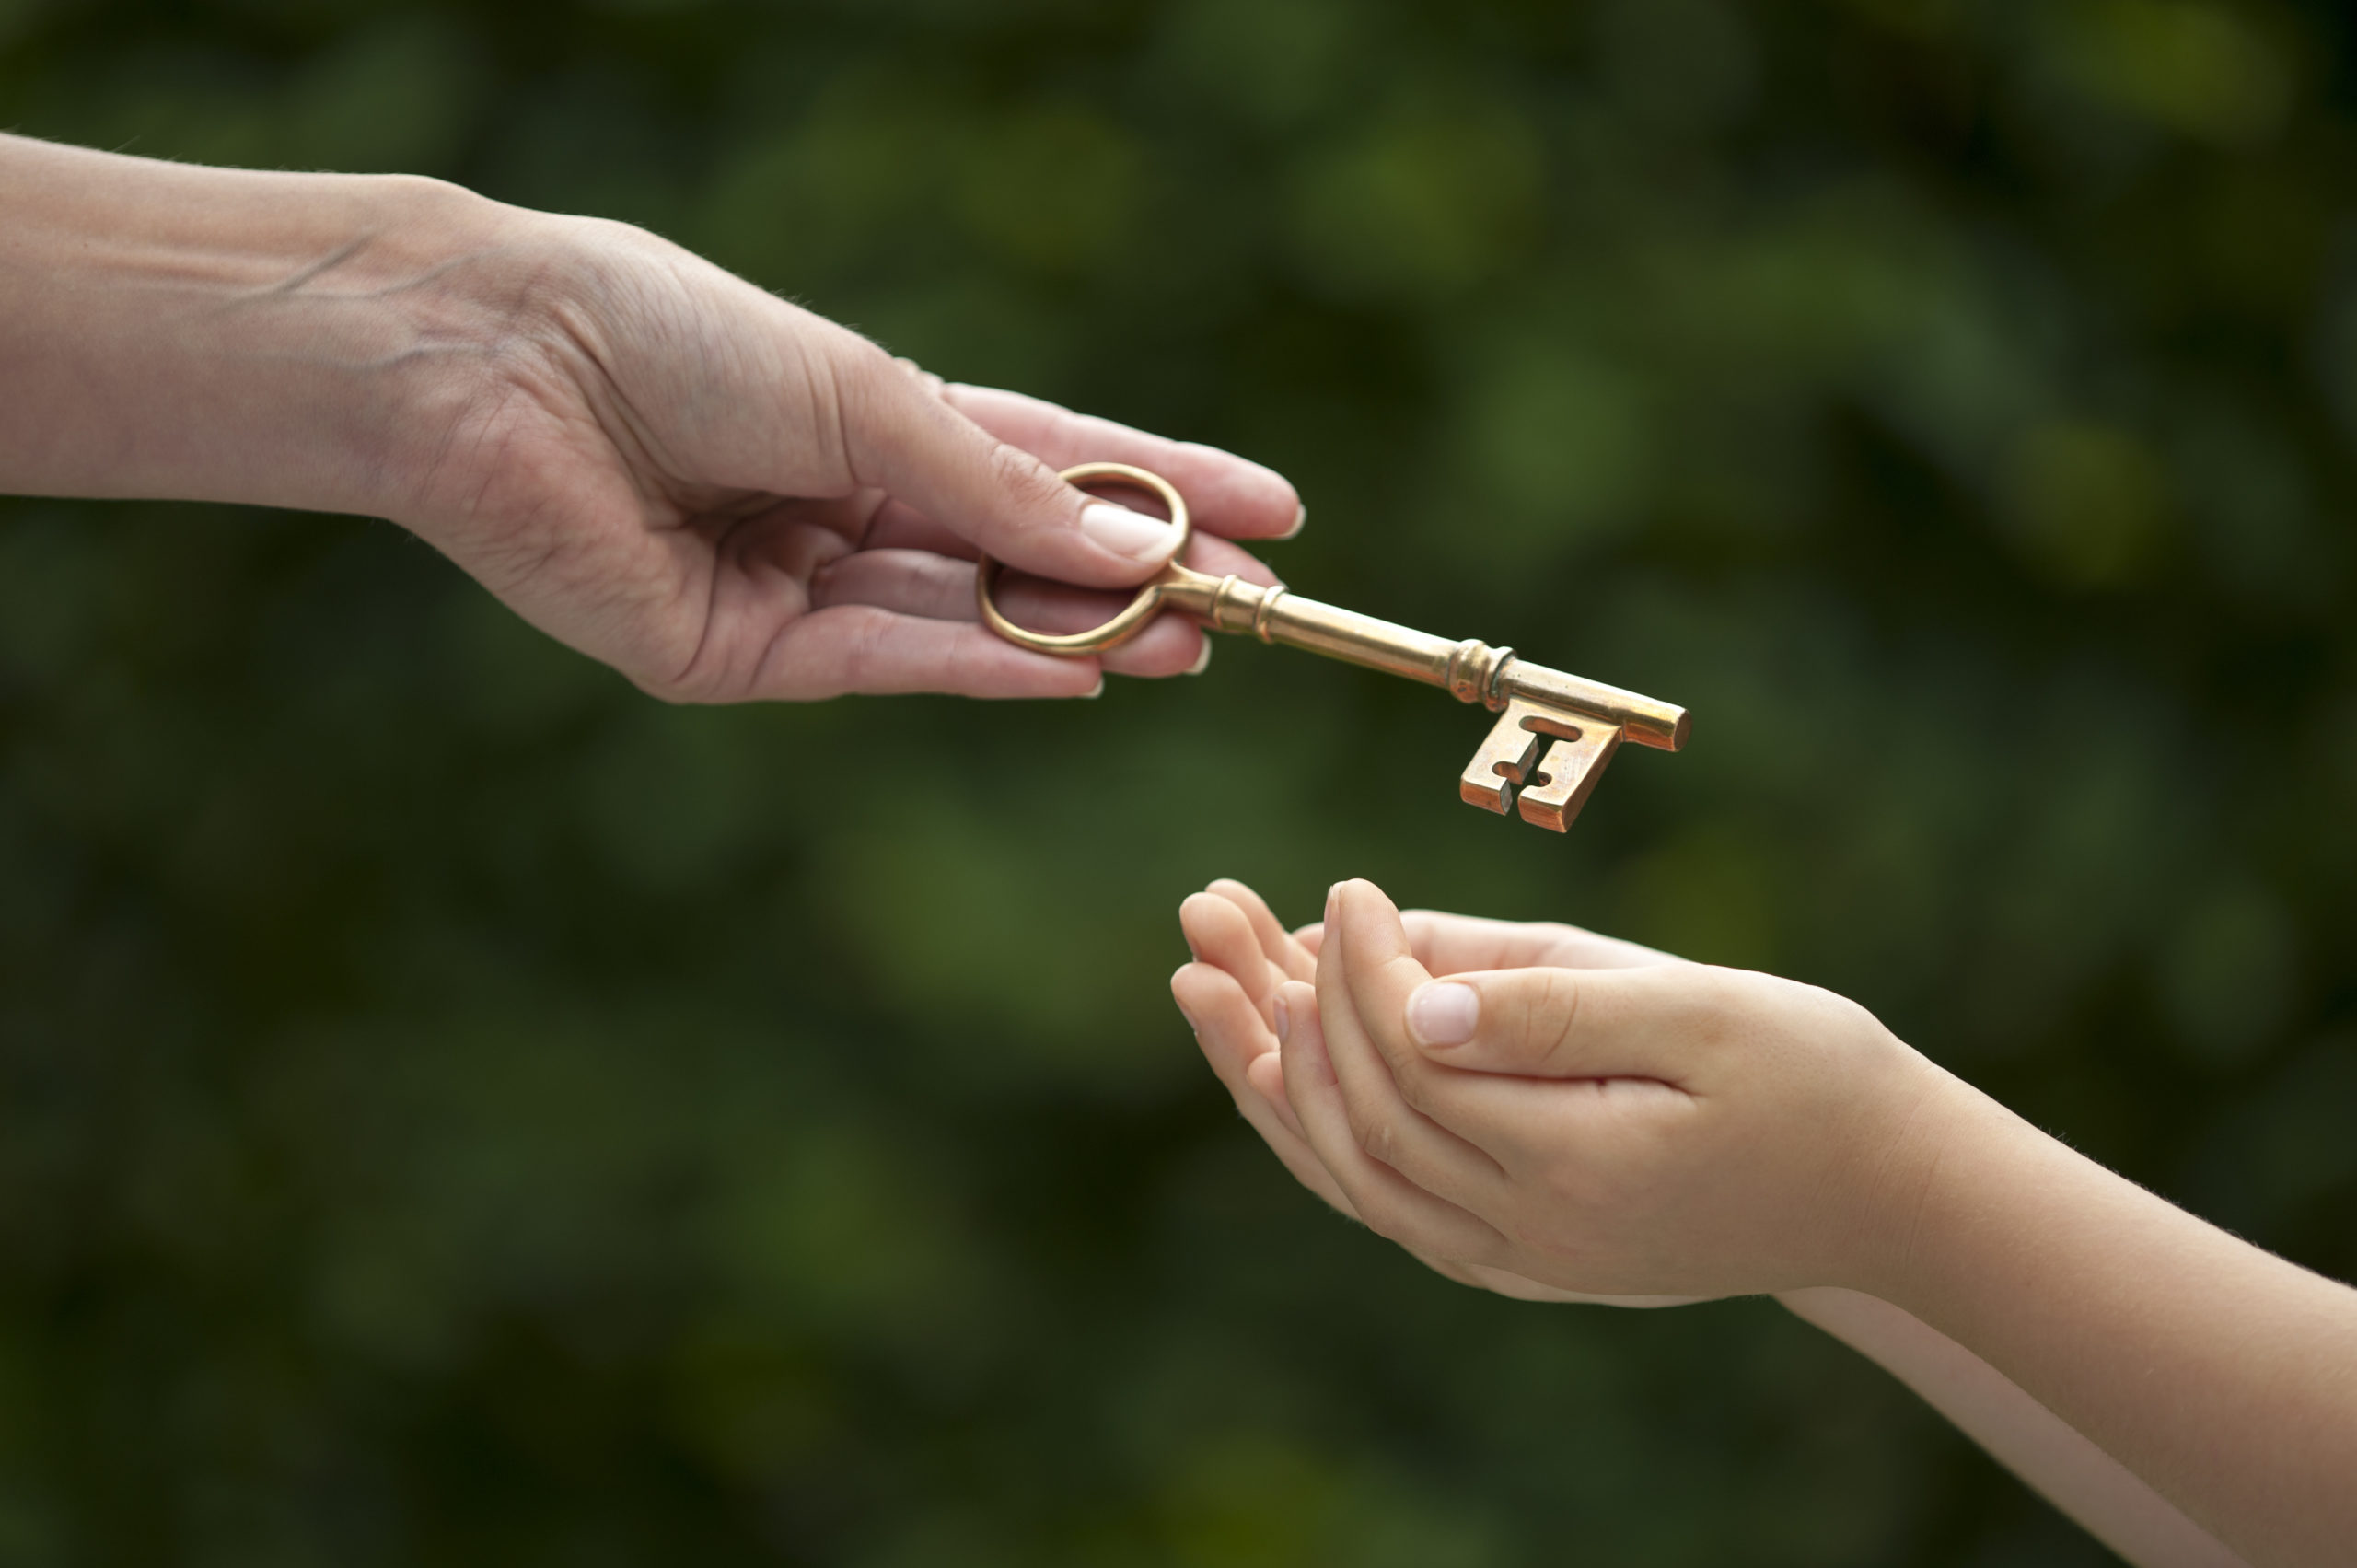 I Received an Inheritance, Now What? - Parsec Financial